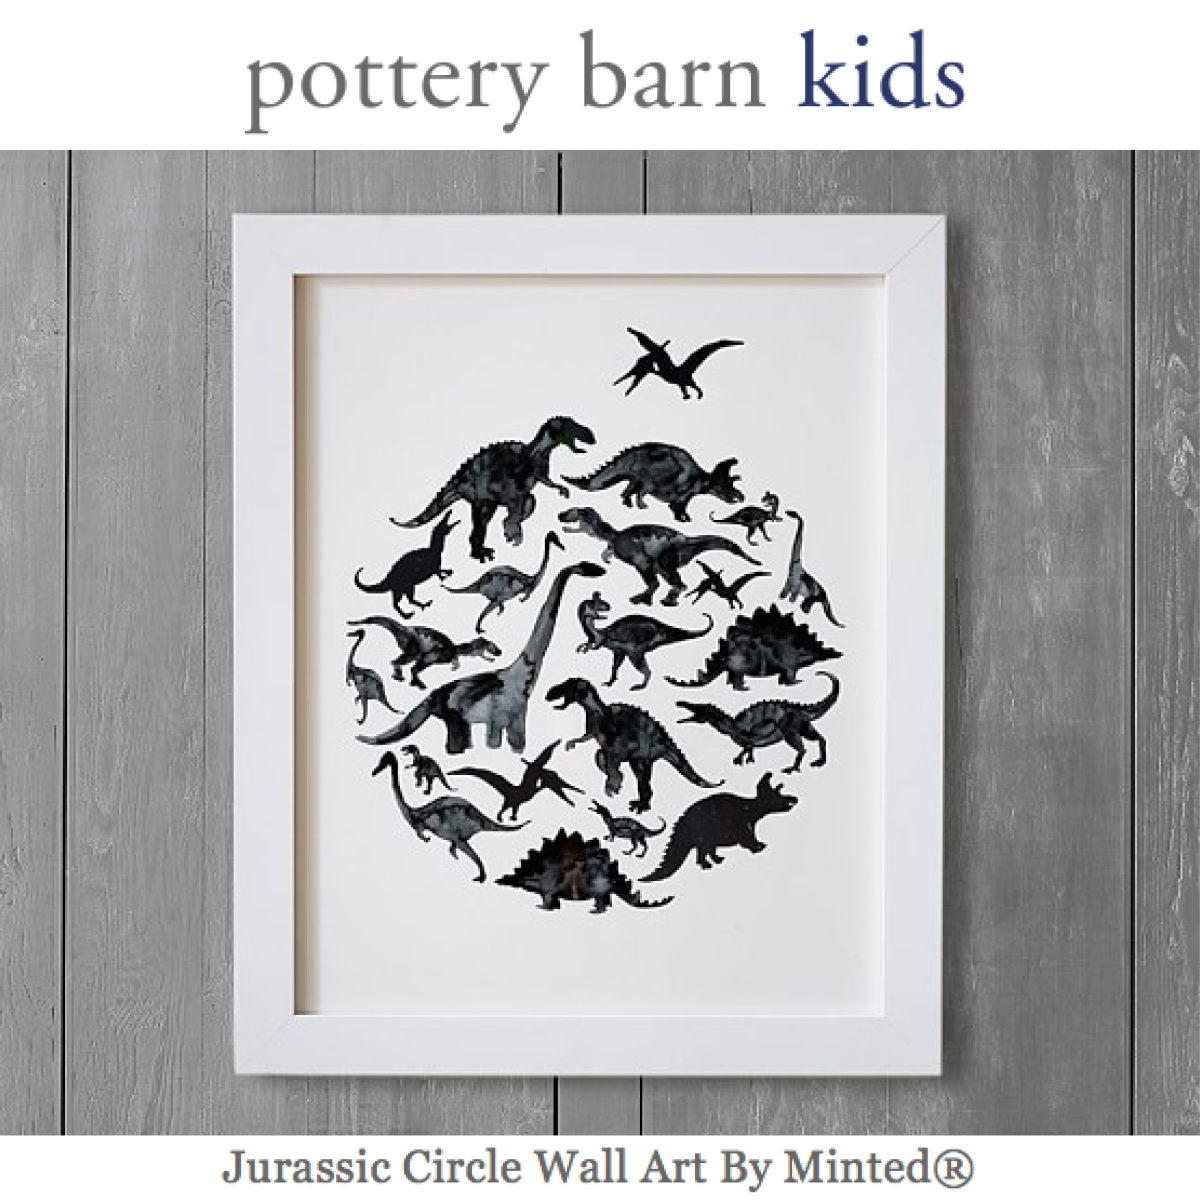 http://www.potterybarnkids.com/products/jurassic-circle-minted-art/?pkey=cminted-collection&&cminted-collection